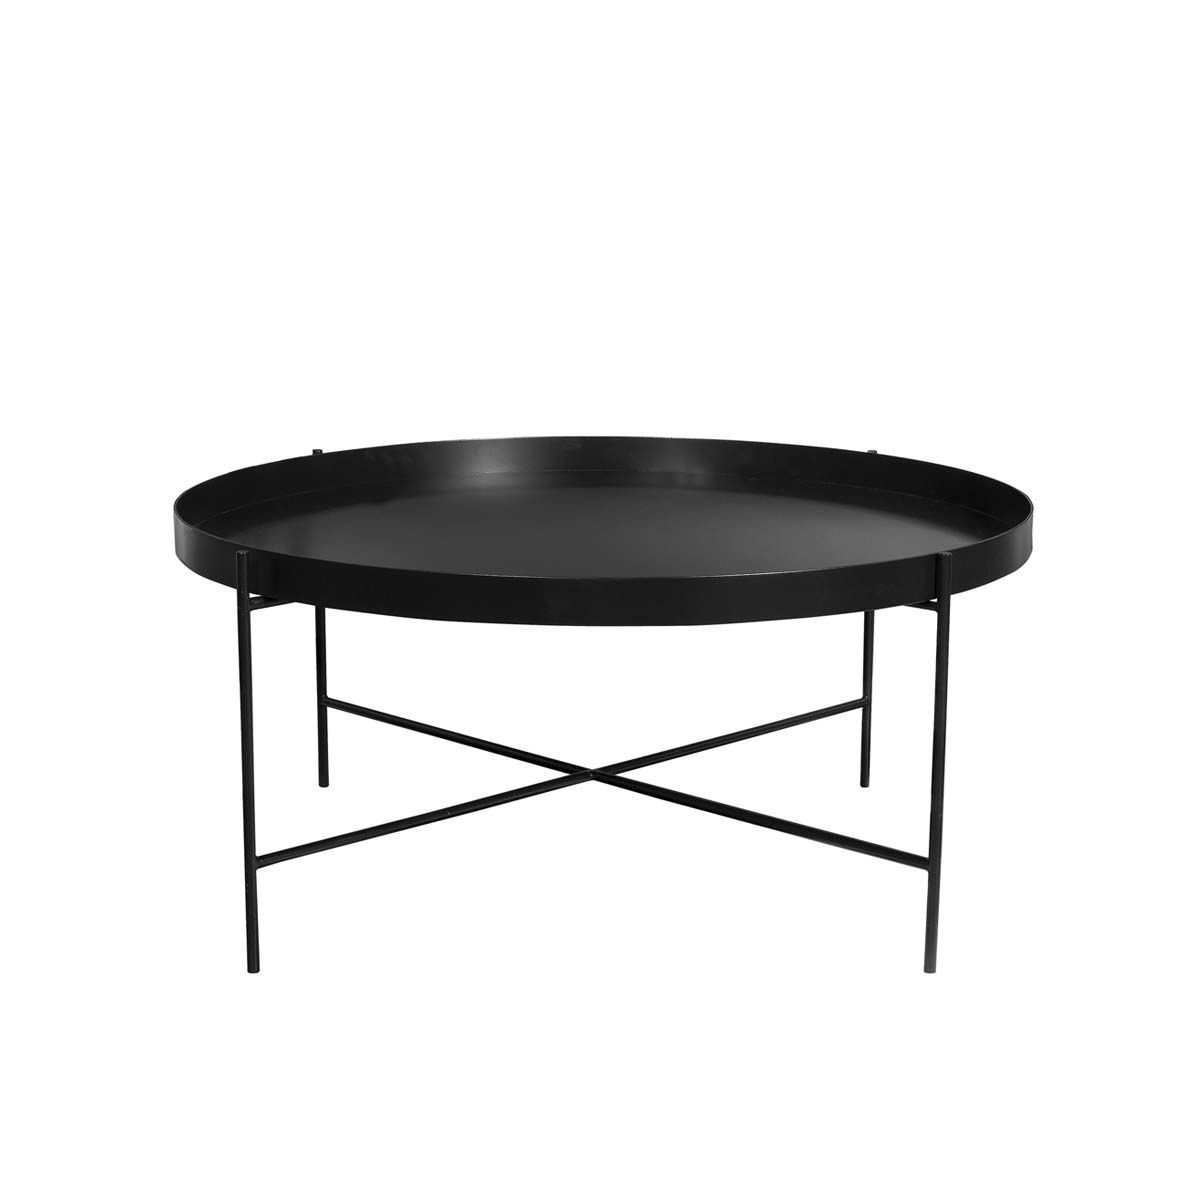 Round Tray Steel Coffee Table Coffee Table Steel Coffee Table